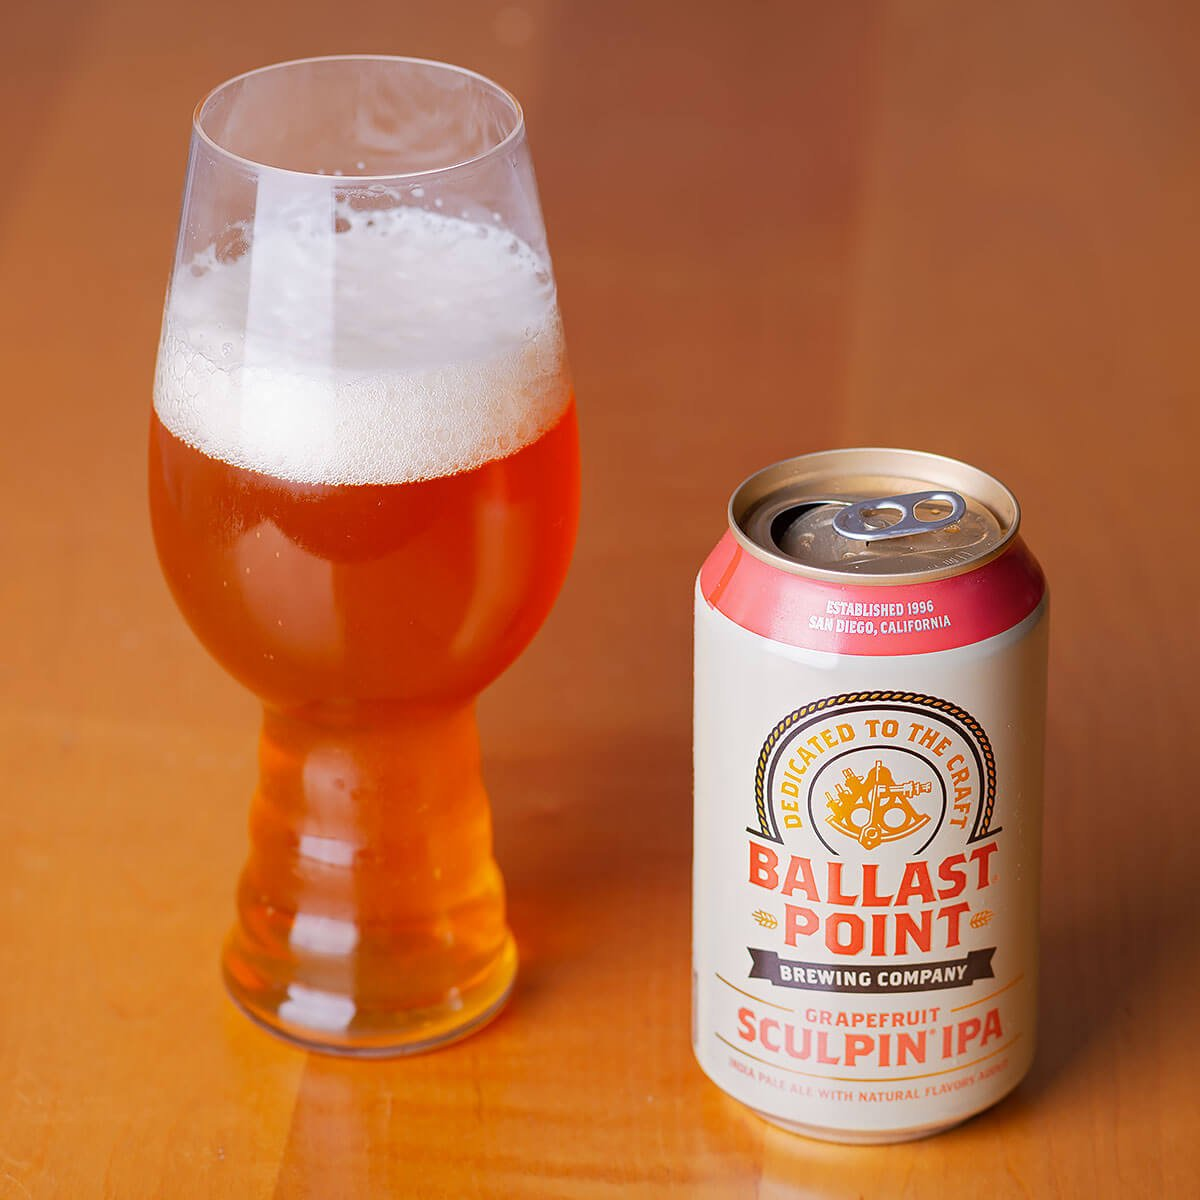 Grapefruit Sculpin is an American IPA by Ballast Point Brewing Company that delivers big grapefruit flavor with a hefty malt backbone.